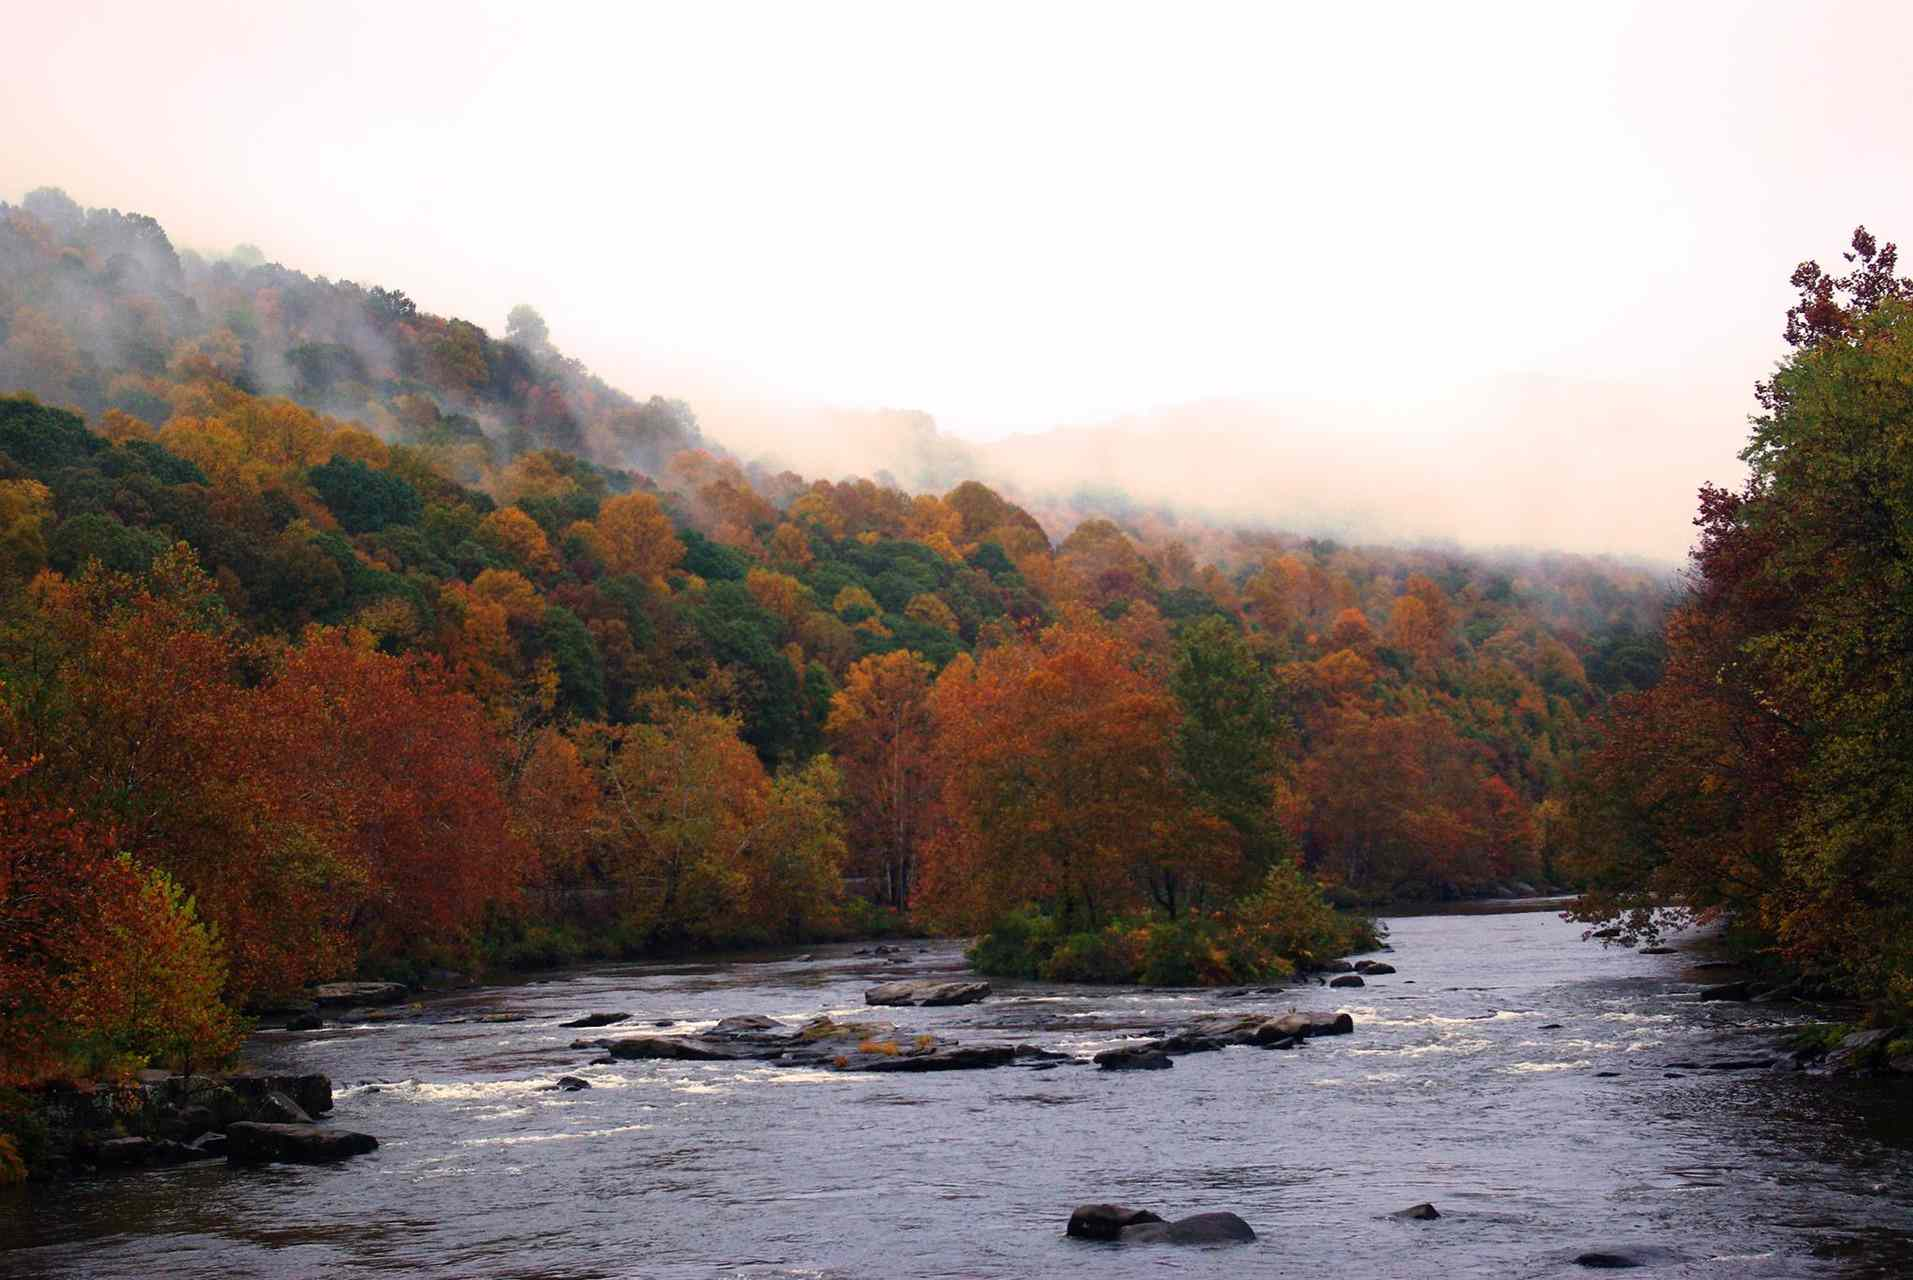 Ohiopyle State Park - view of the river and trees in fall colors.